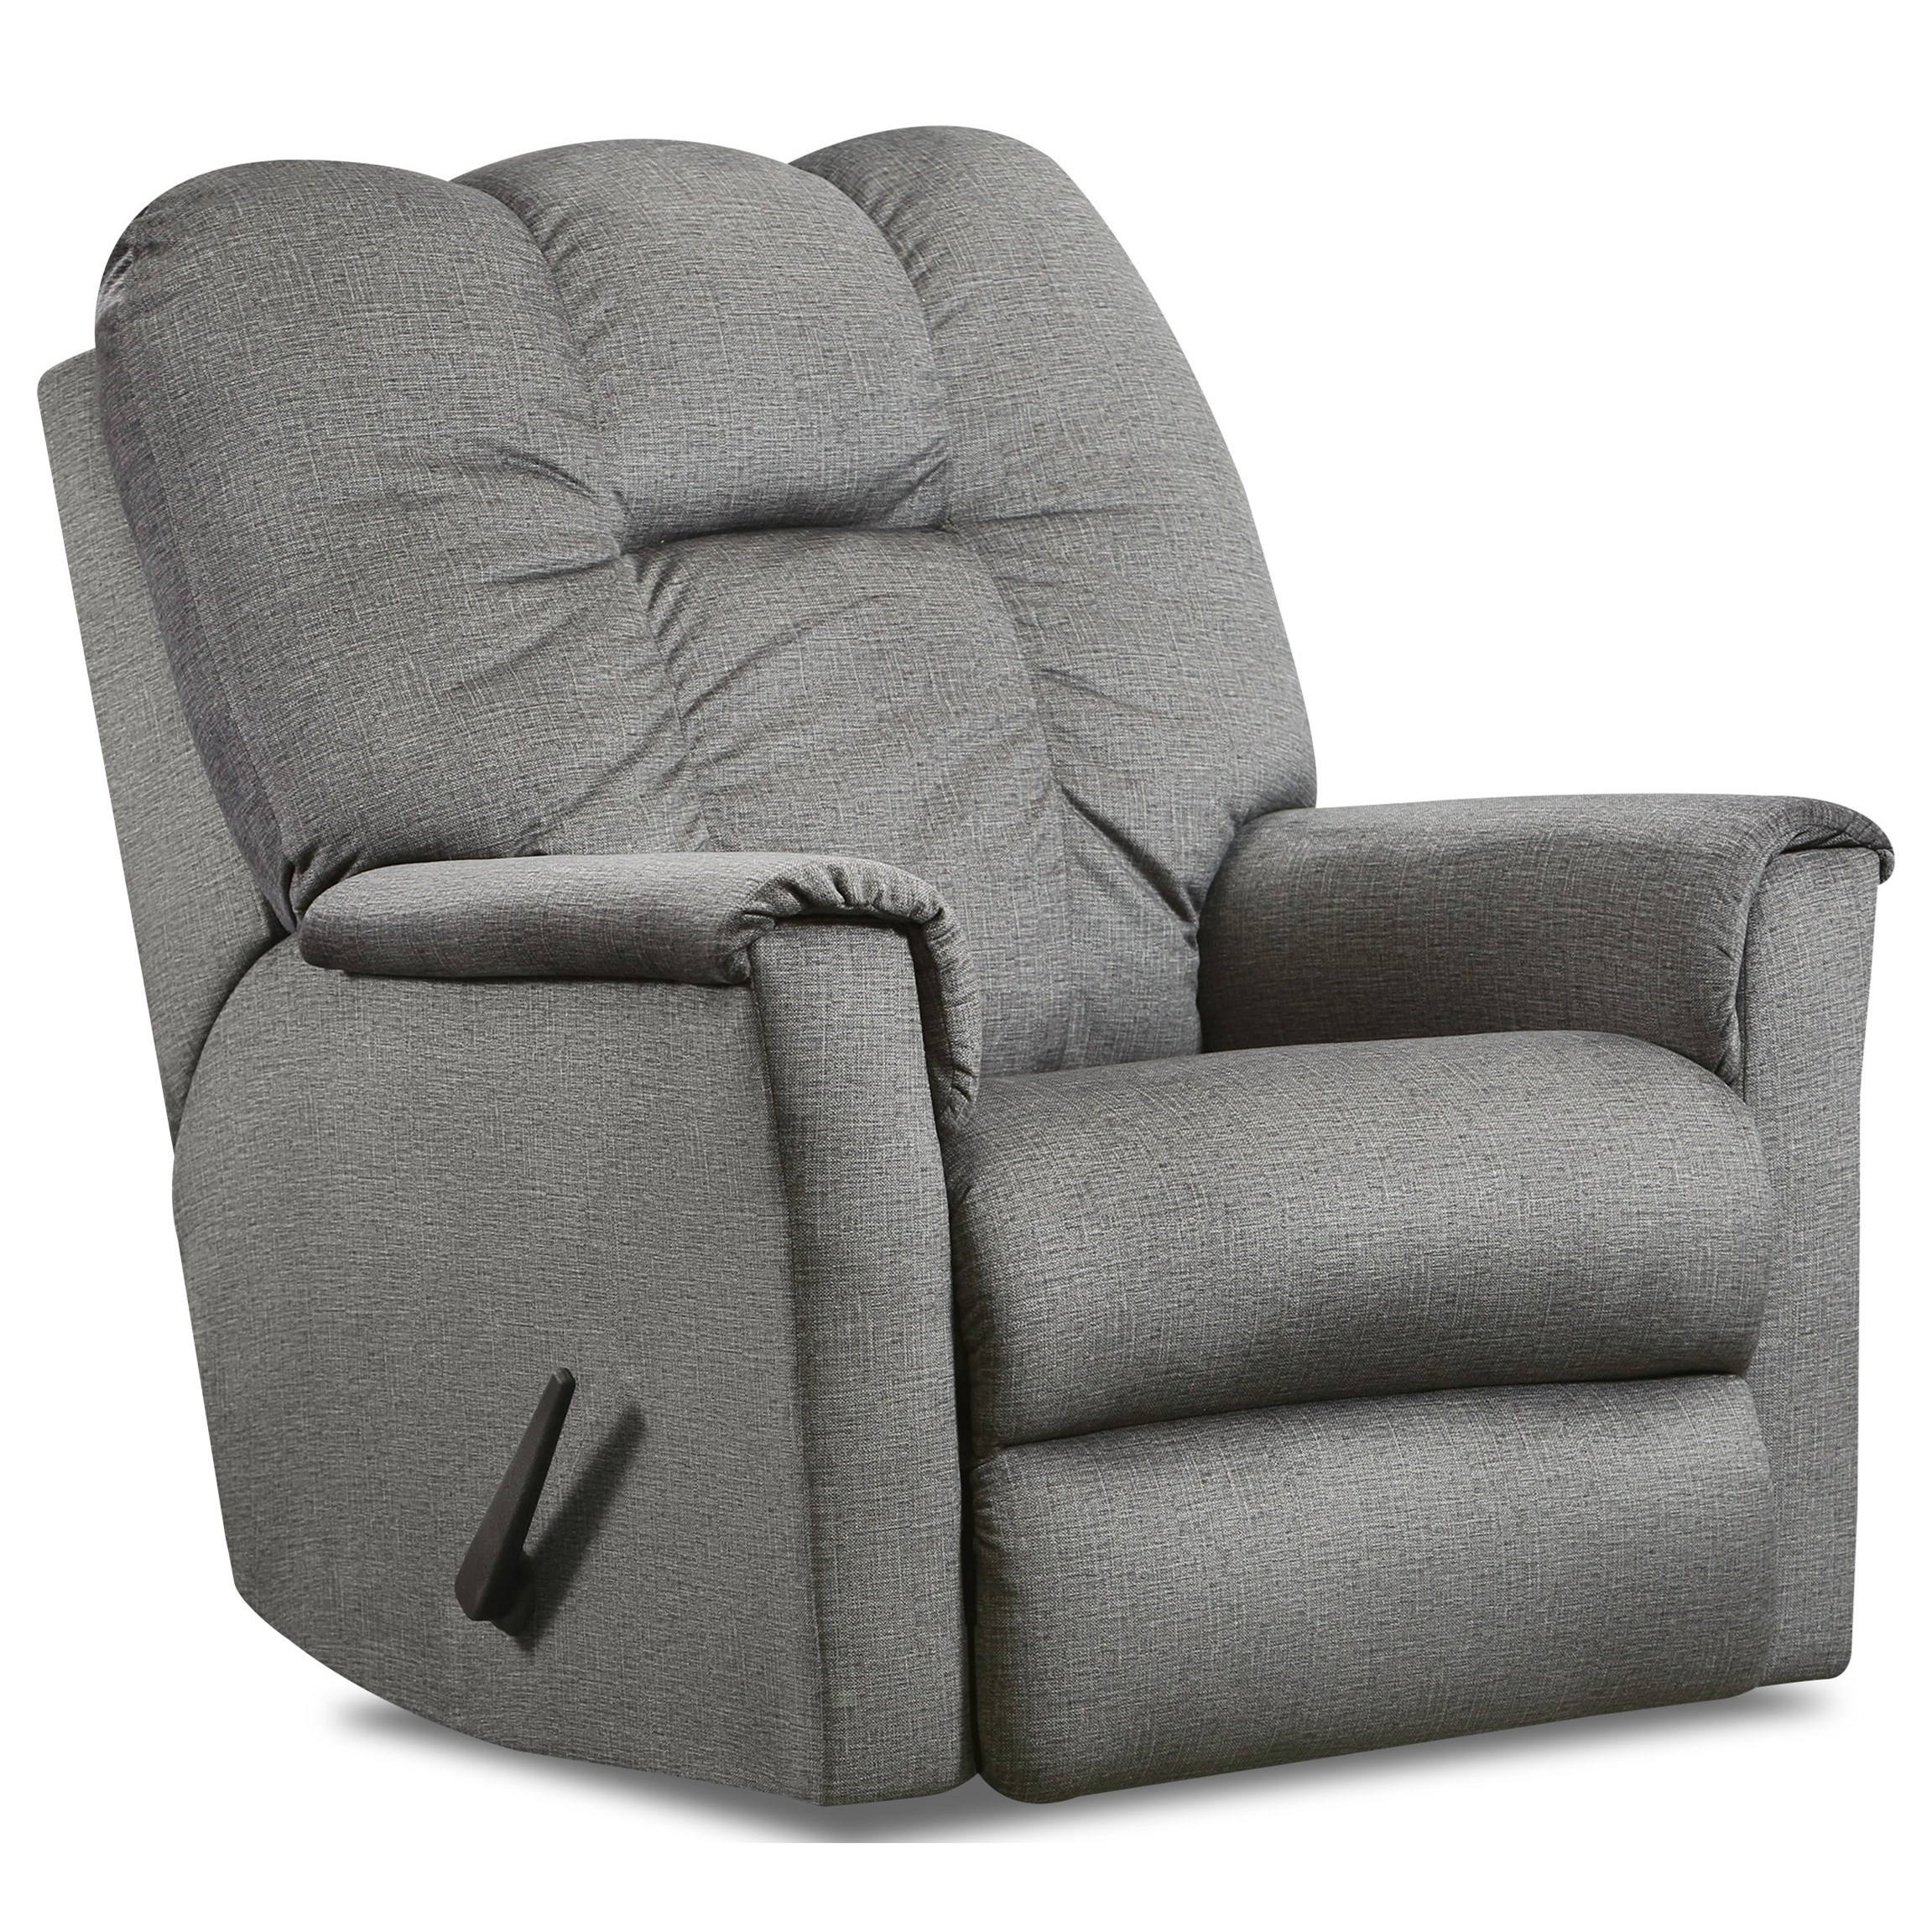 Baxter Rocker Recliner by Southern Motion at Furniture Barn